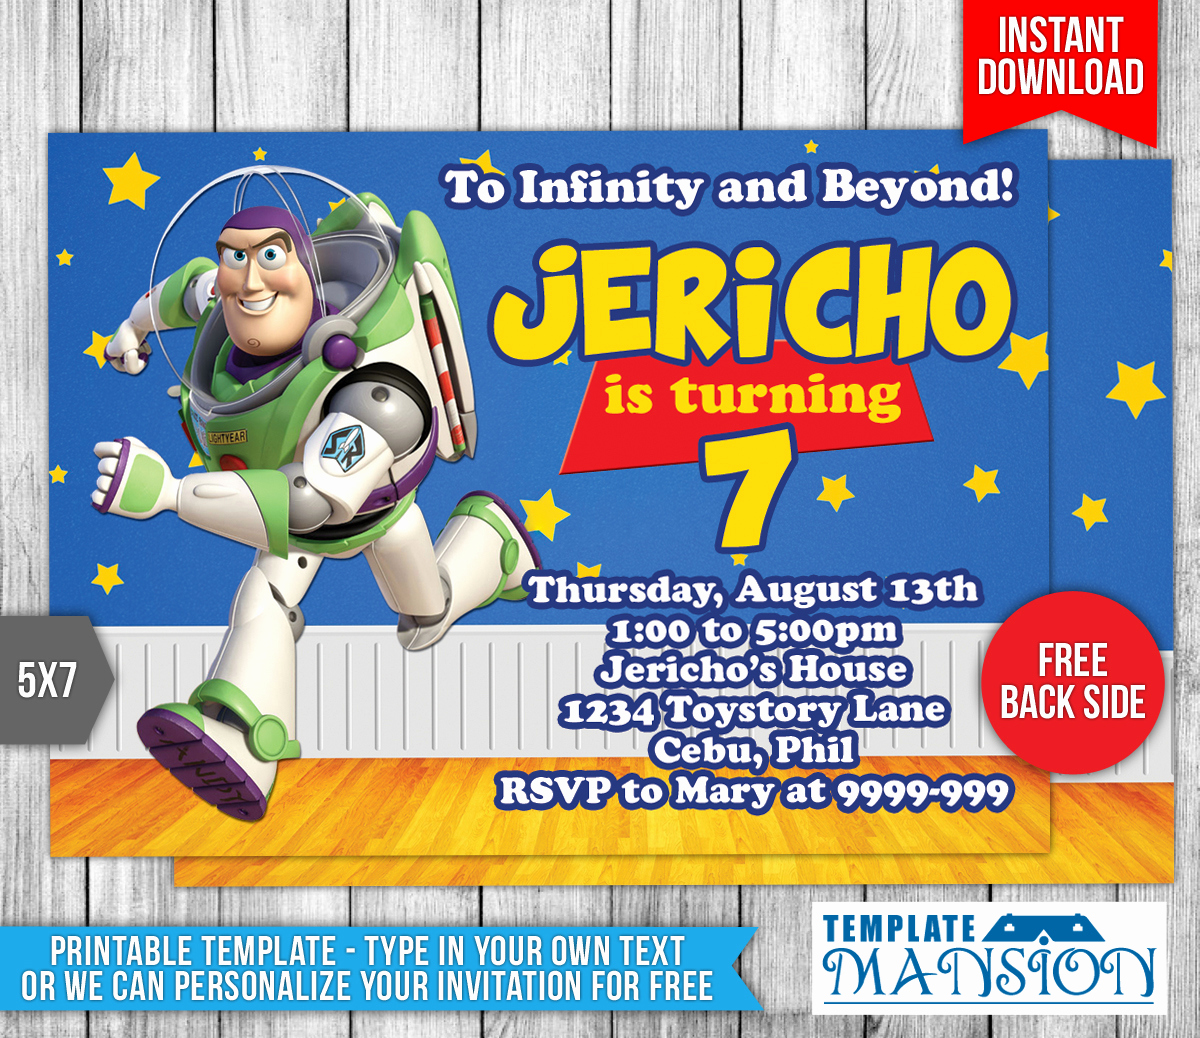 Toy Story Invitation Template Unique Buzz Lightyear toy Story Birthday Invitation by